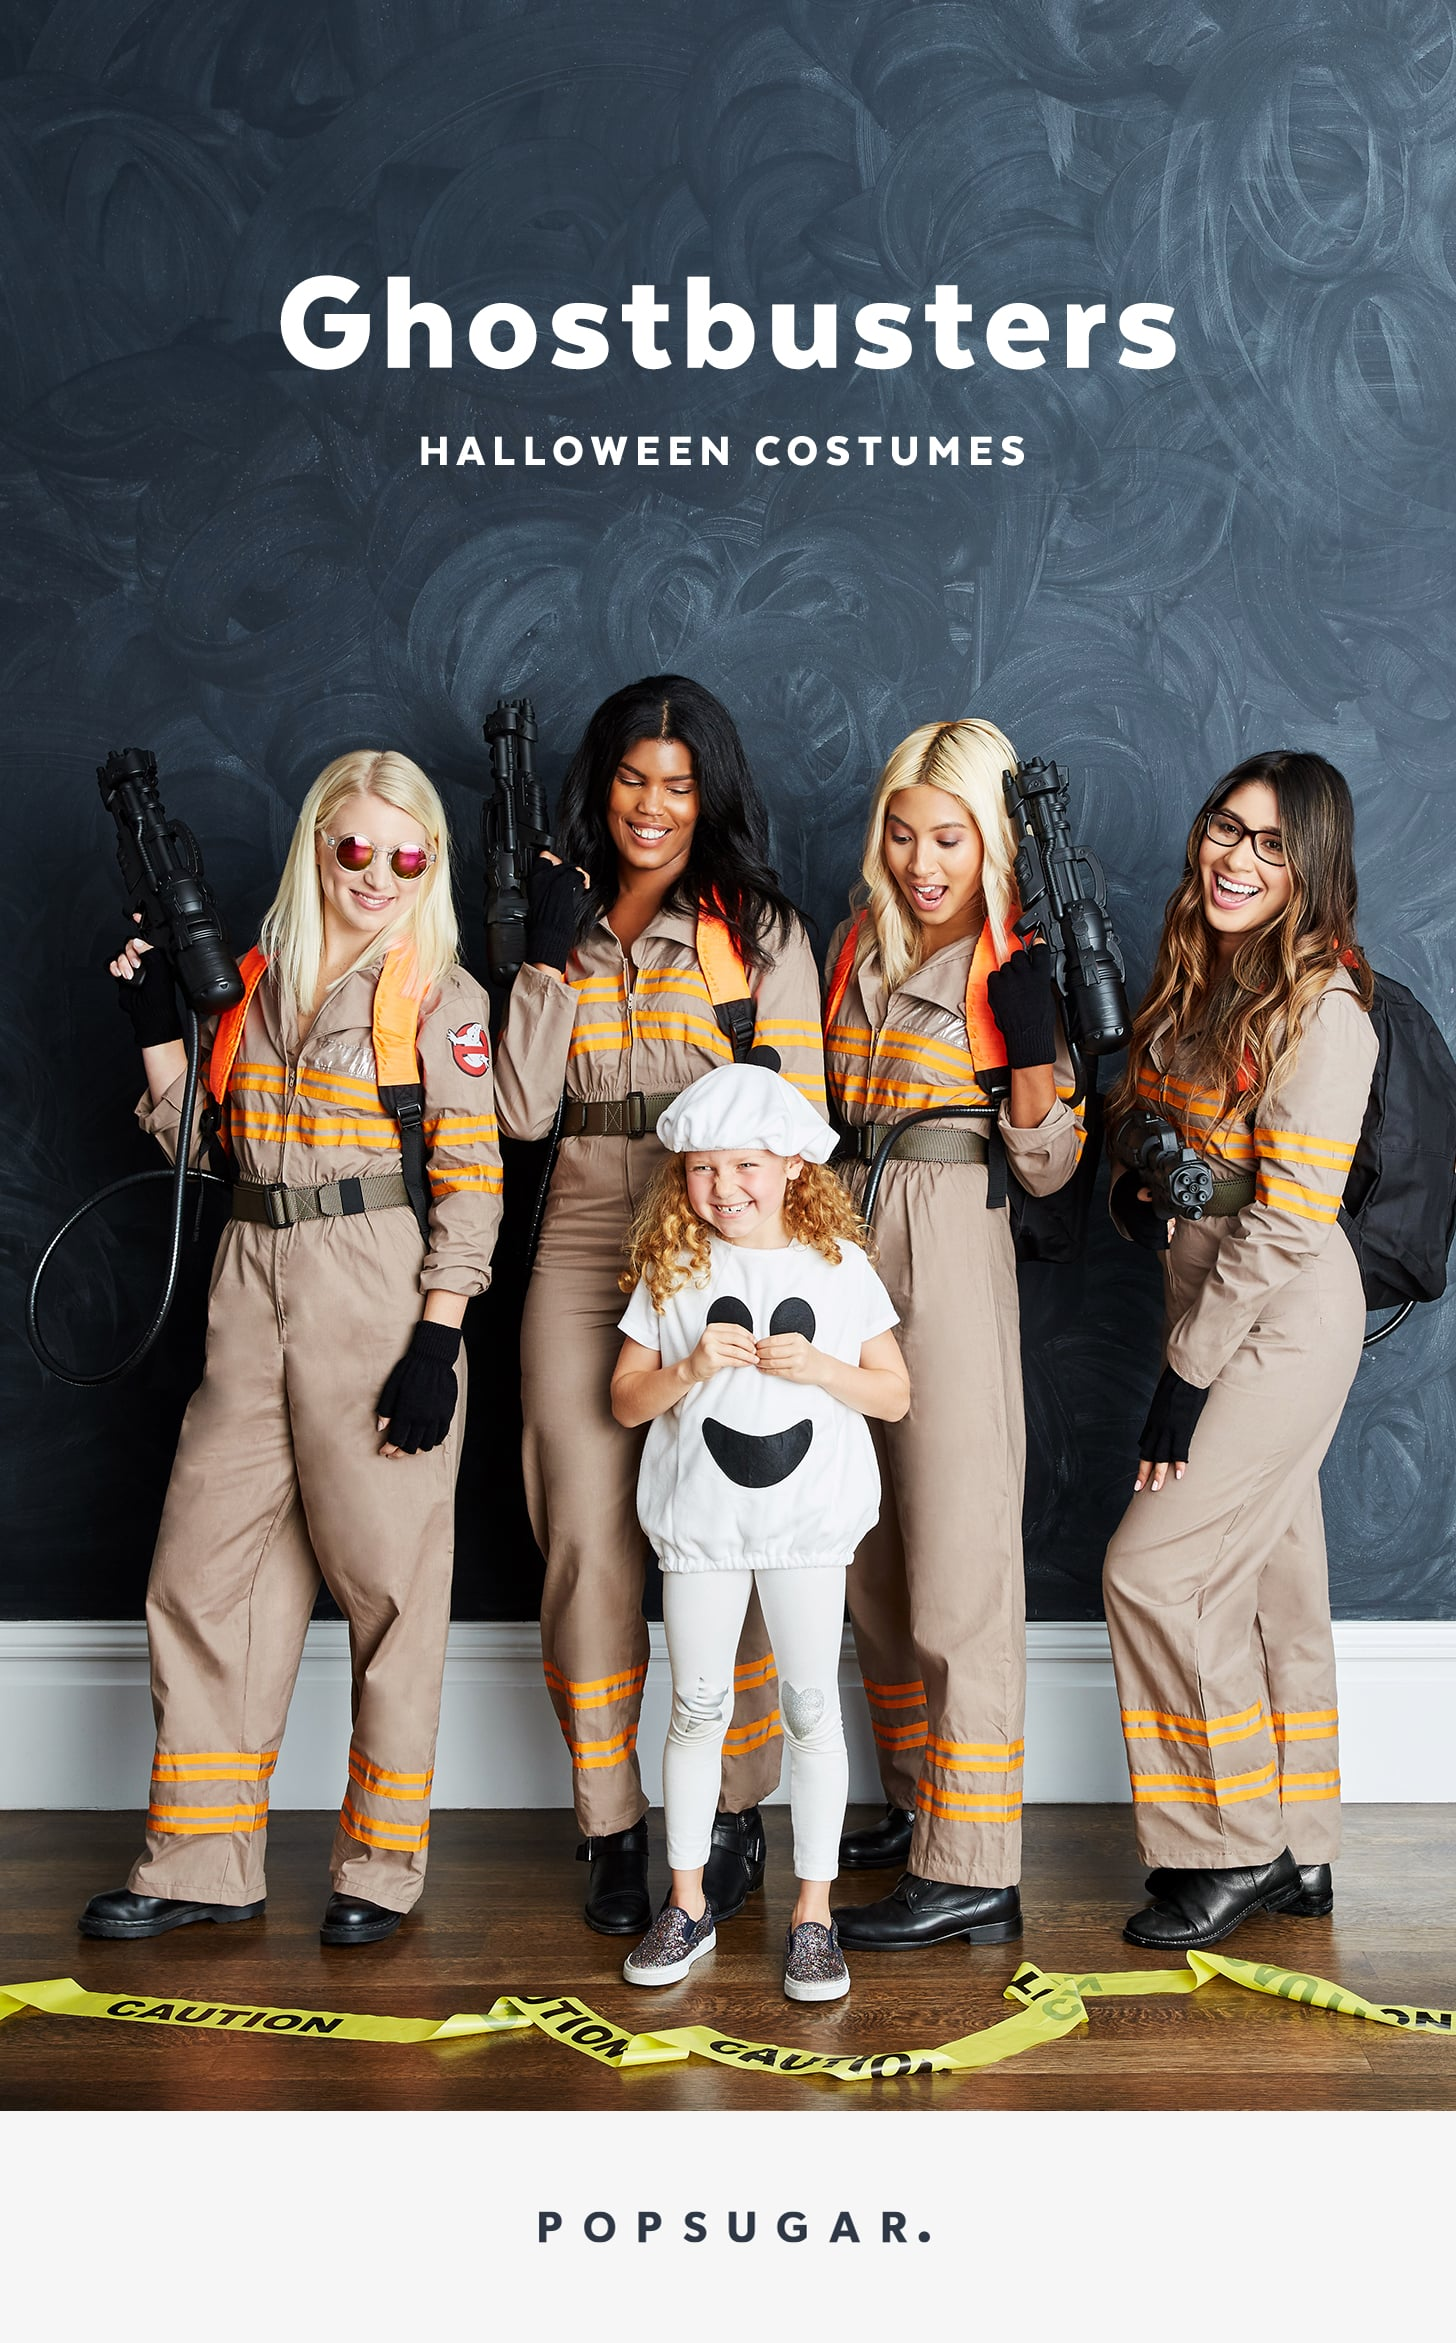 diy ghostbusters halloween costume | popsugar smart living